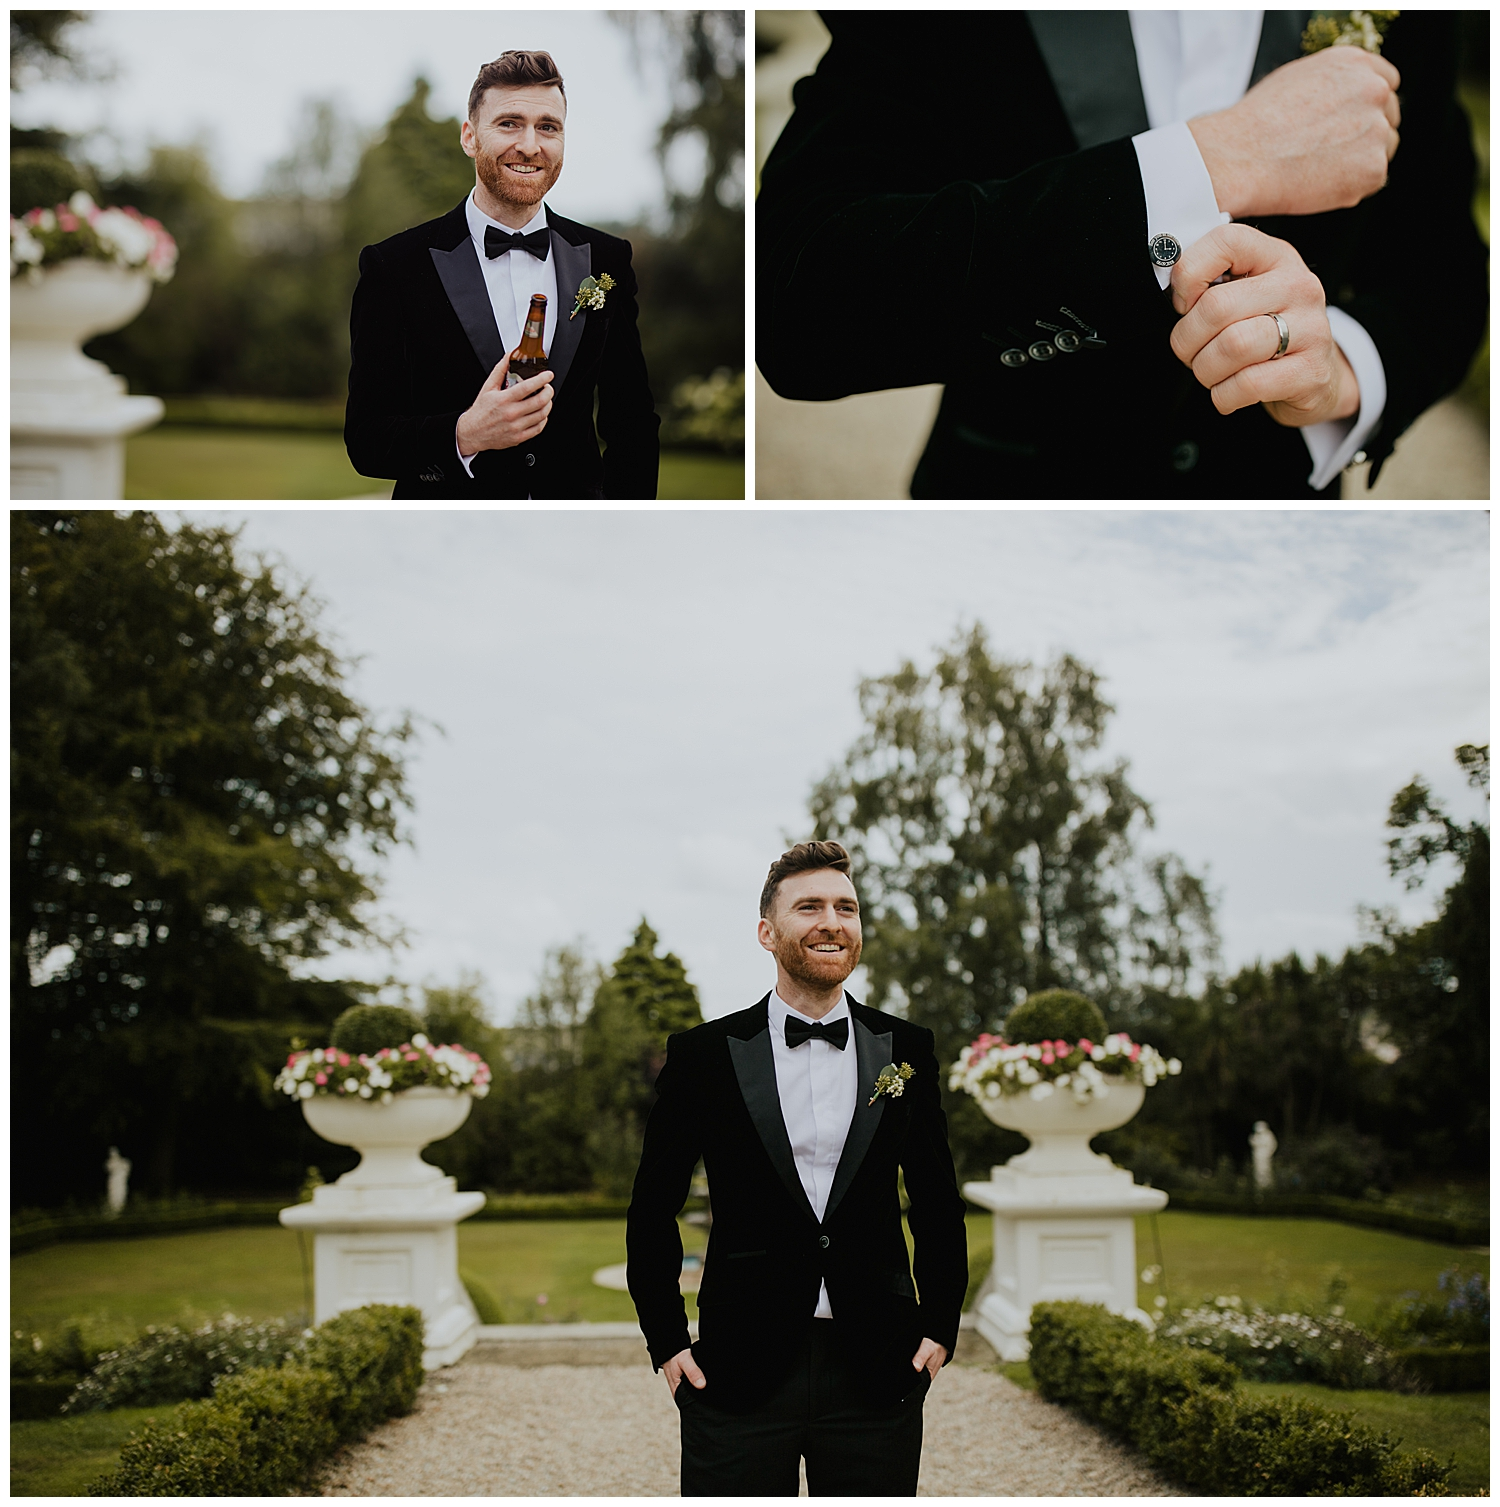 a&c_tinakilly_black_tie_wedding_photographer_livia_figueiredo_142.jpg